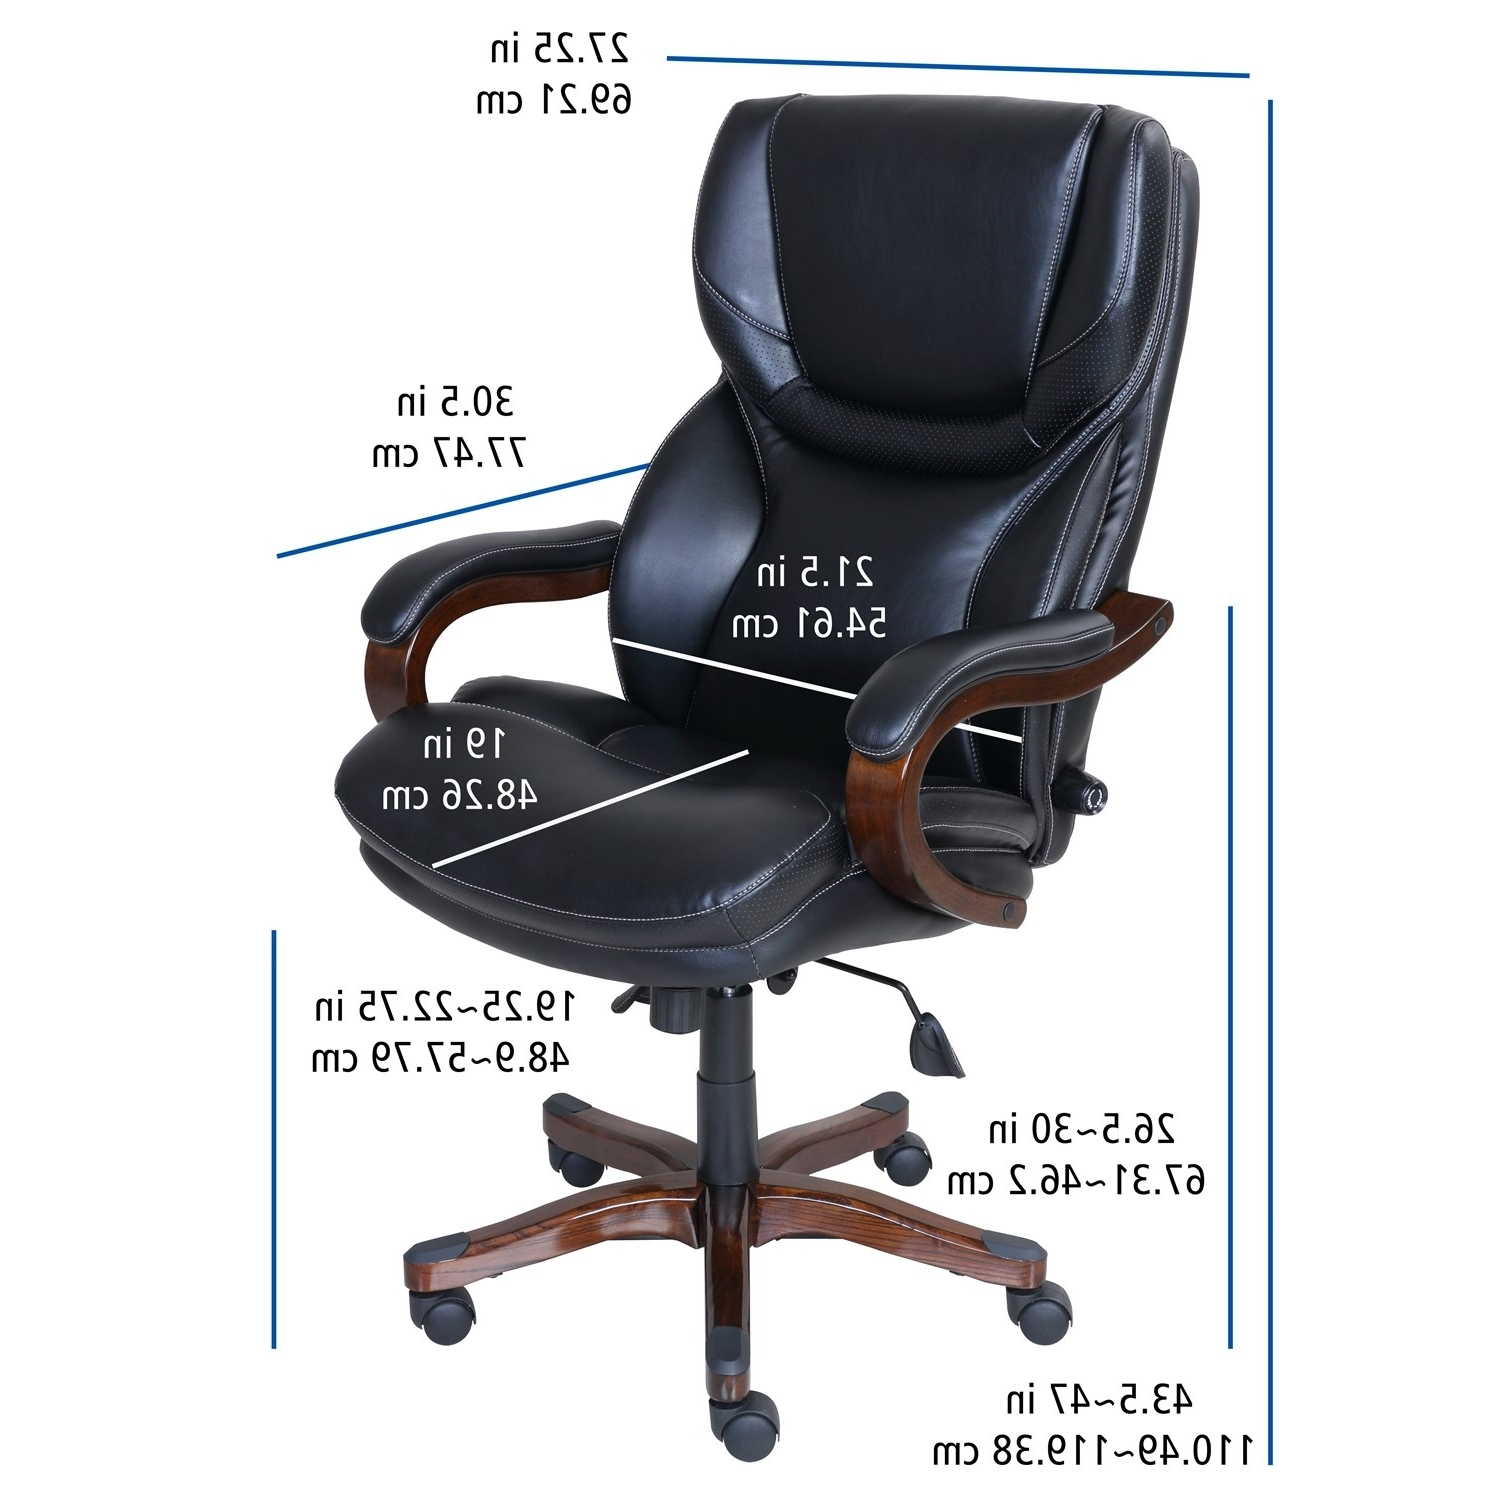 Serta At Home 46859 Executive Office Chair In Black With Bonded In 2019 Black Executive Office Chairs (View 17 of 20)